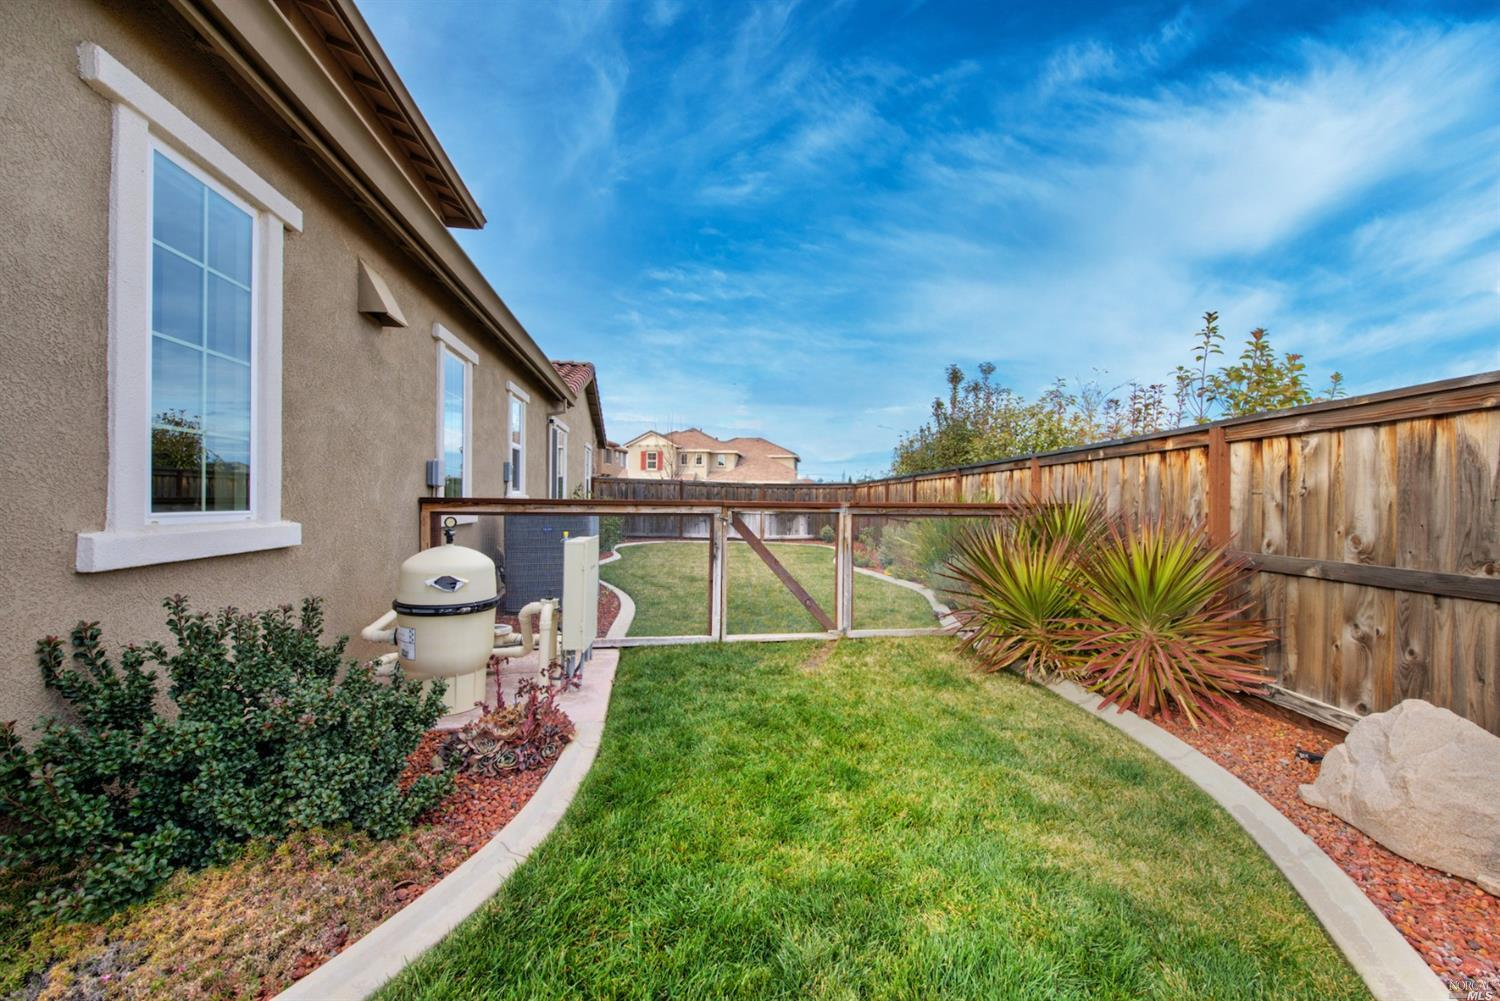 231 Deer Branch Lane, Vacaville, CA 95688